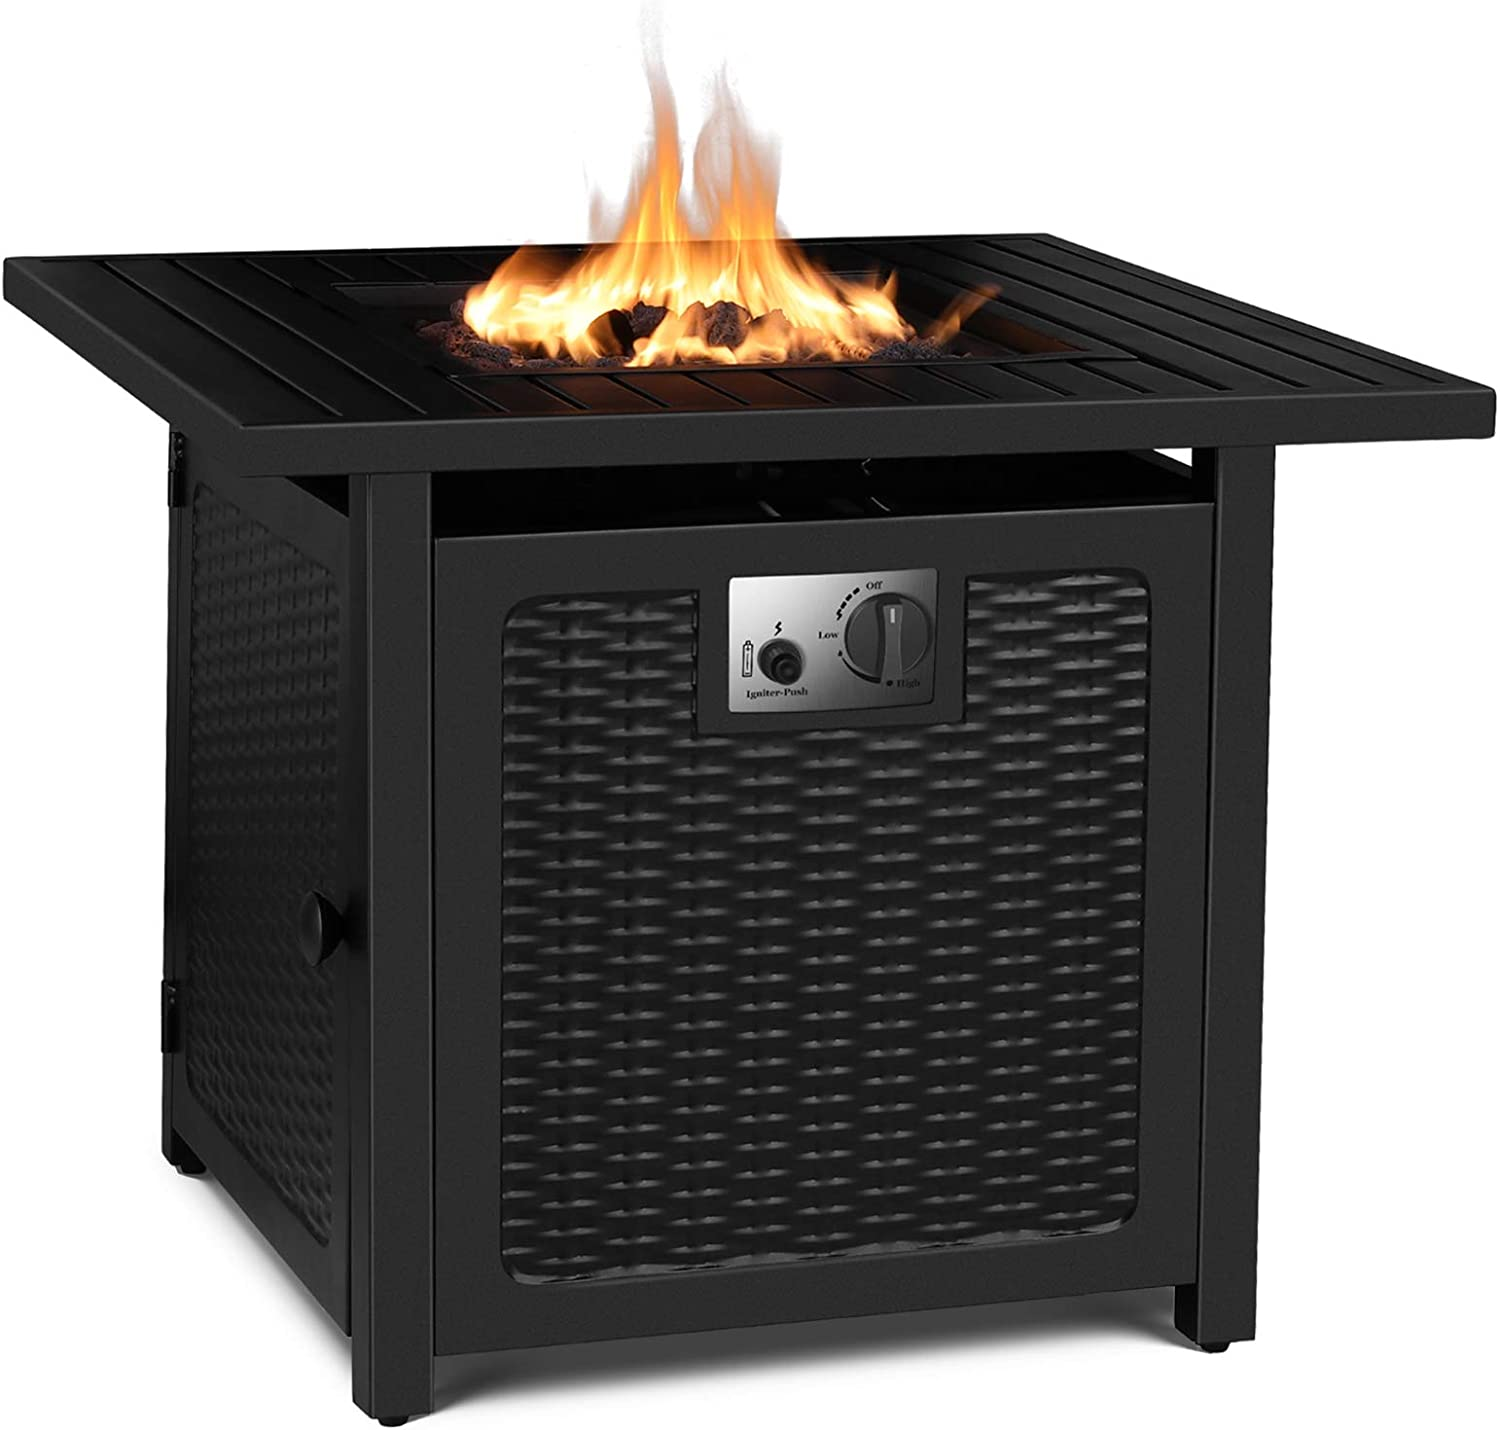 Amazon Com Fixkit 30 Propane Fire Pit Table 50 000 Btu Auto Ignition Gas Fire Table With Waterproof Firepit Table Cover Lava Rock Csa Certification Outdoor Square Fireplace For Courtyard Balcony Garden Outdoor